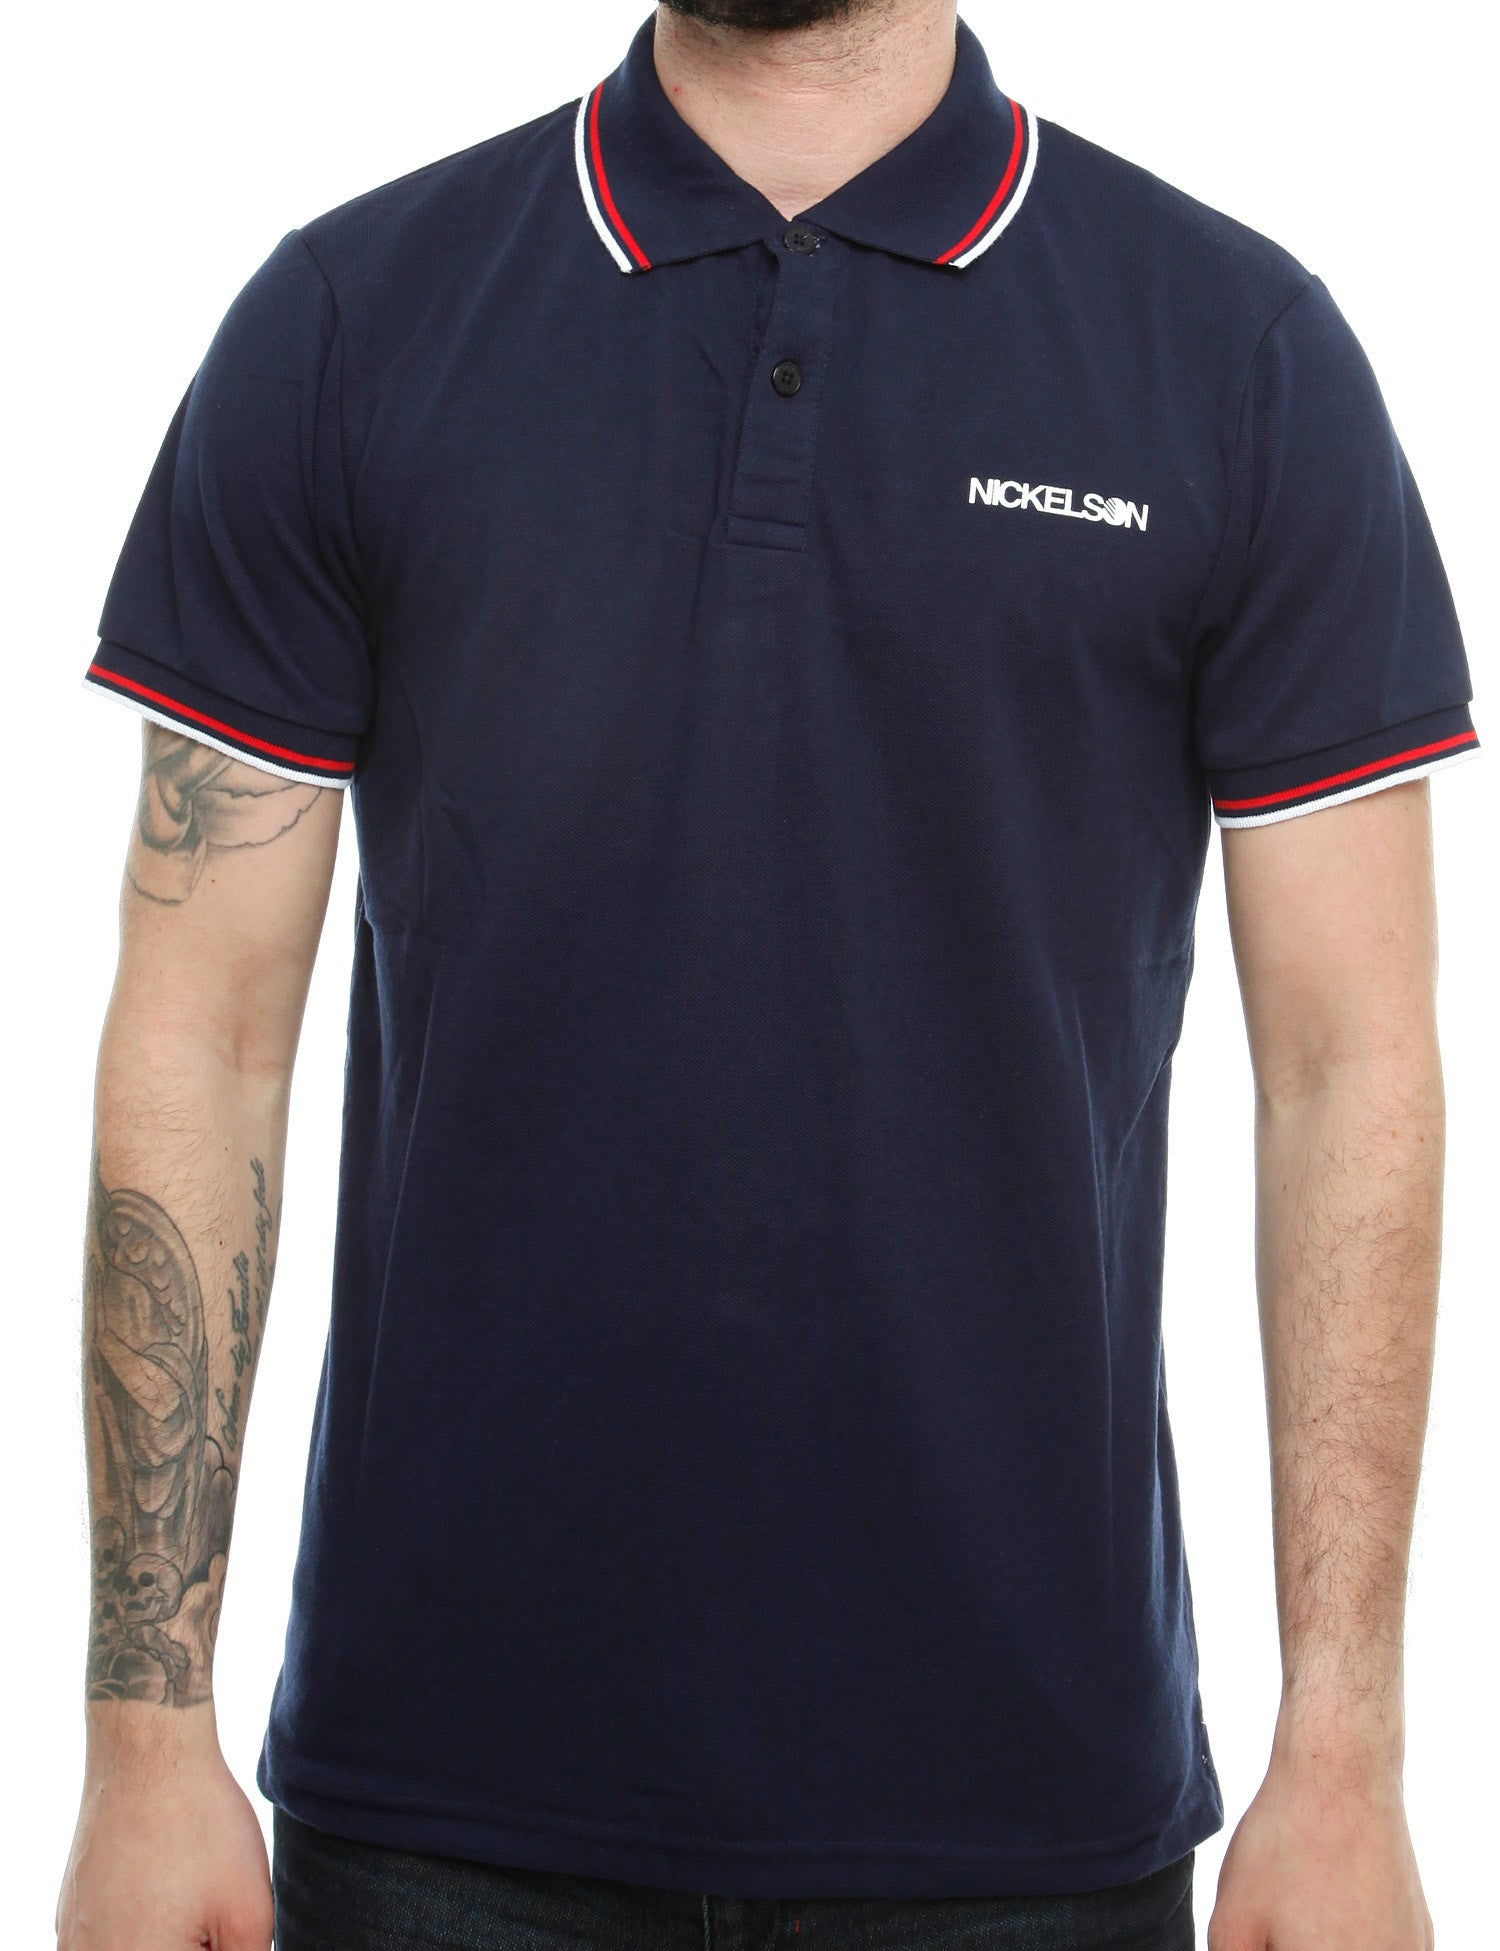 Nickelson Old Street Polo Shirt RSK00030 Peacoat Navy